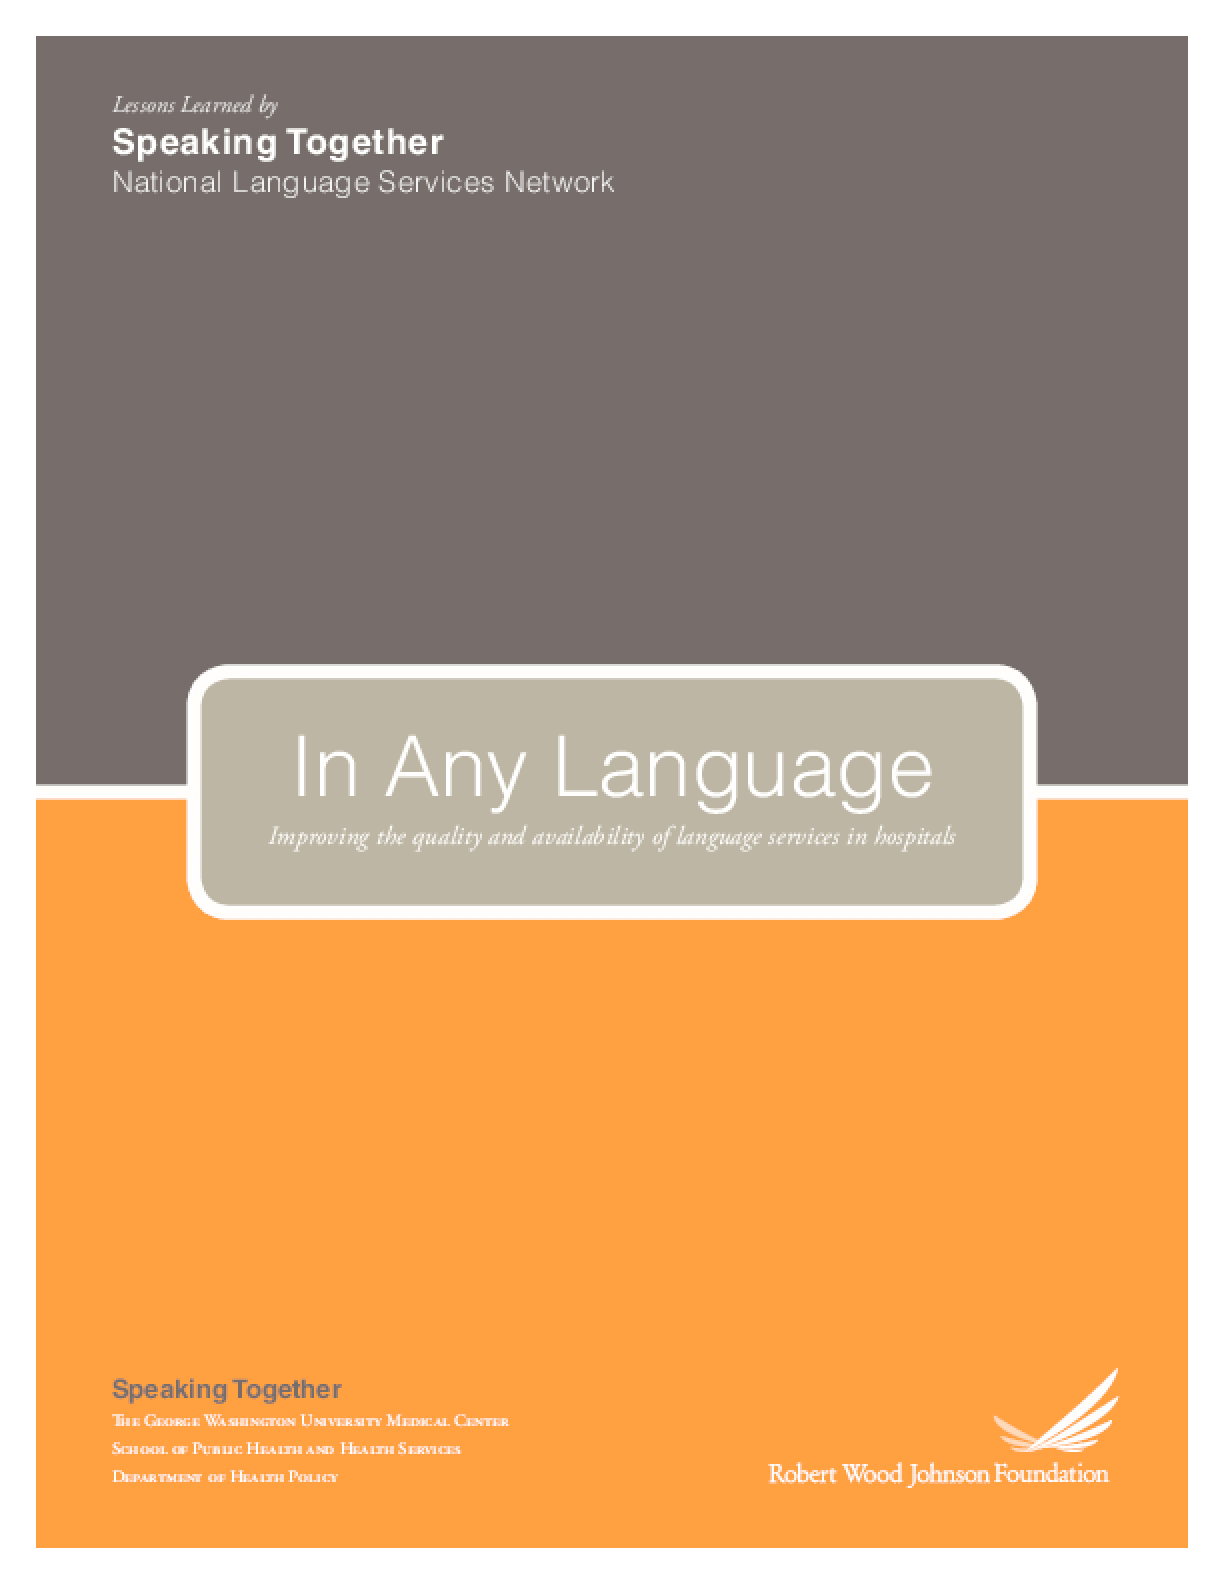 In Any Language: Improving the Quality and Availability of Language Services in Hospitals